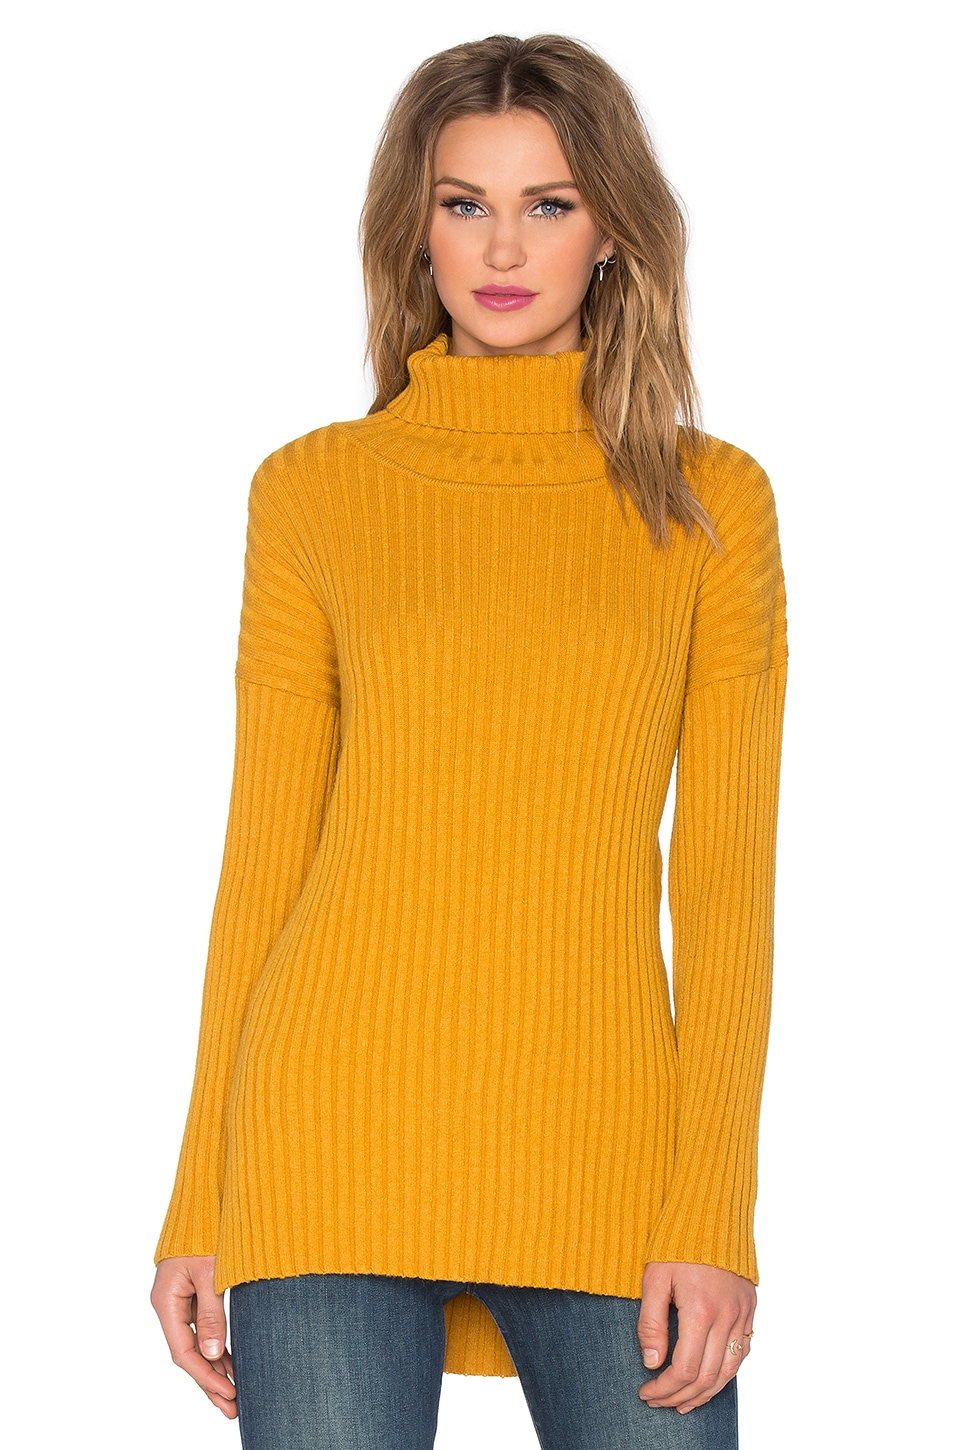 Knot Sisters Lucky Sweater in Mustard